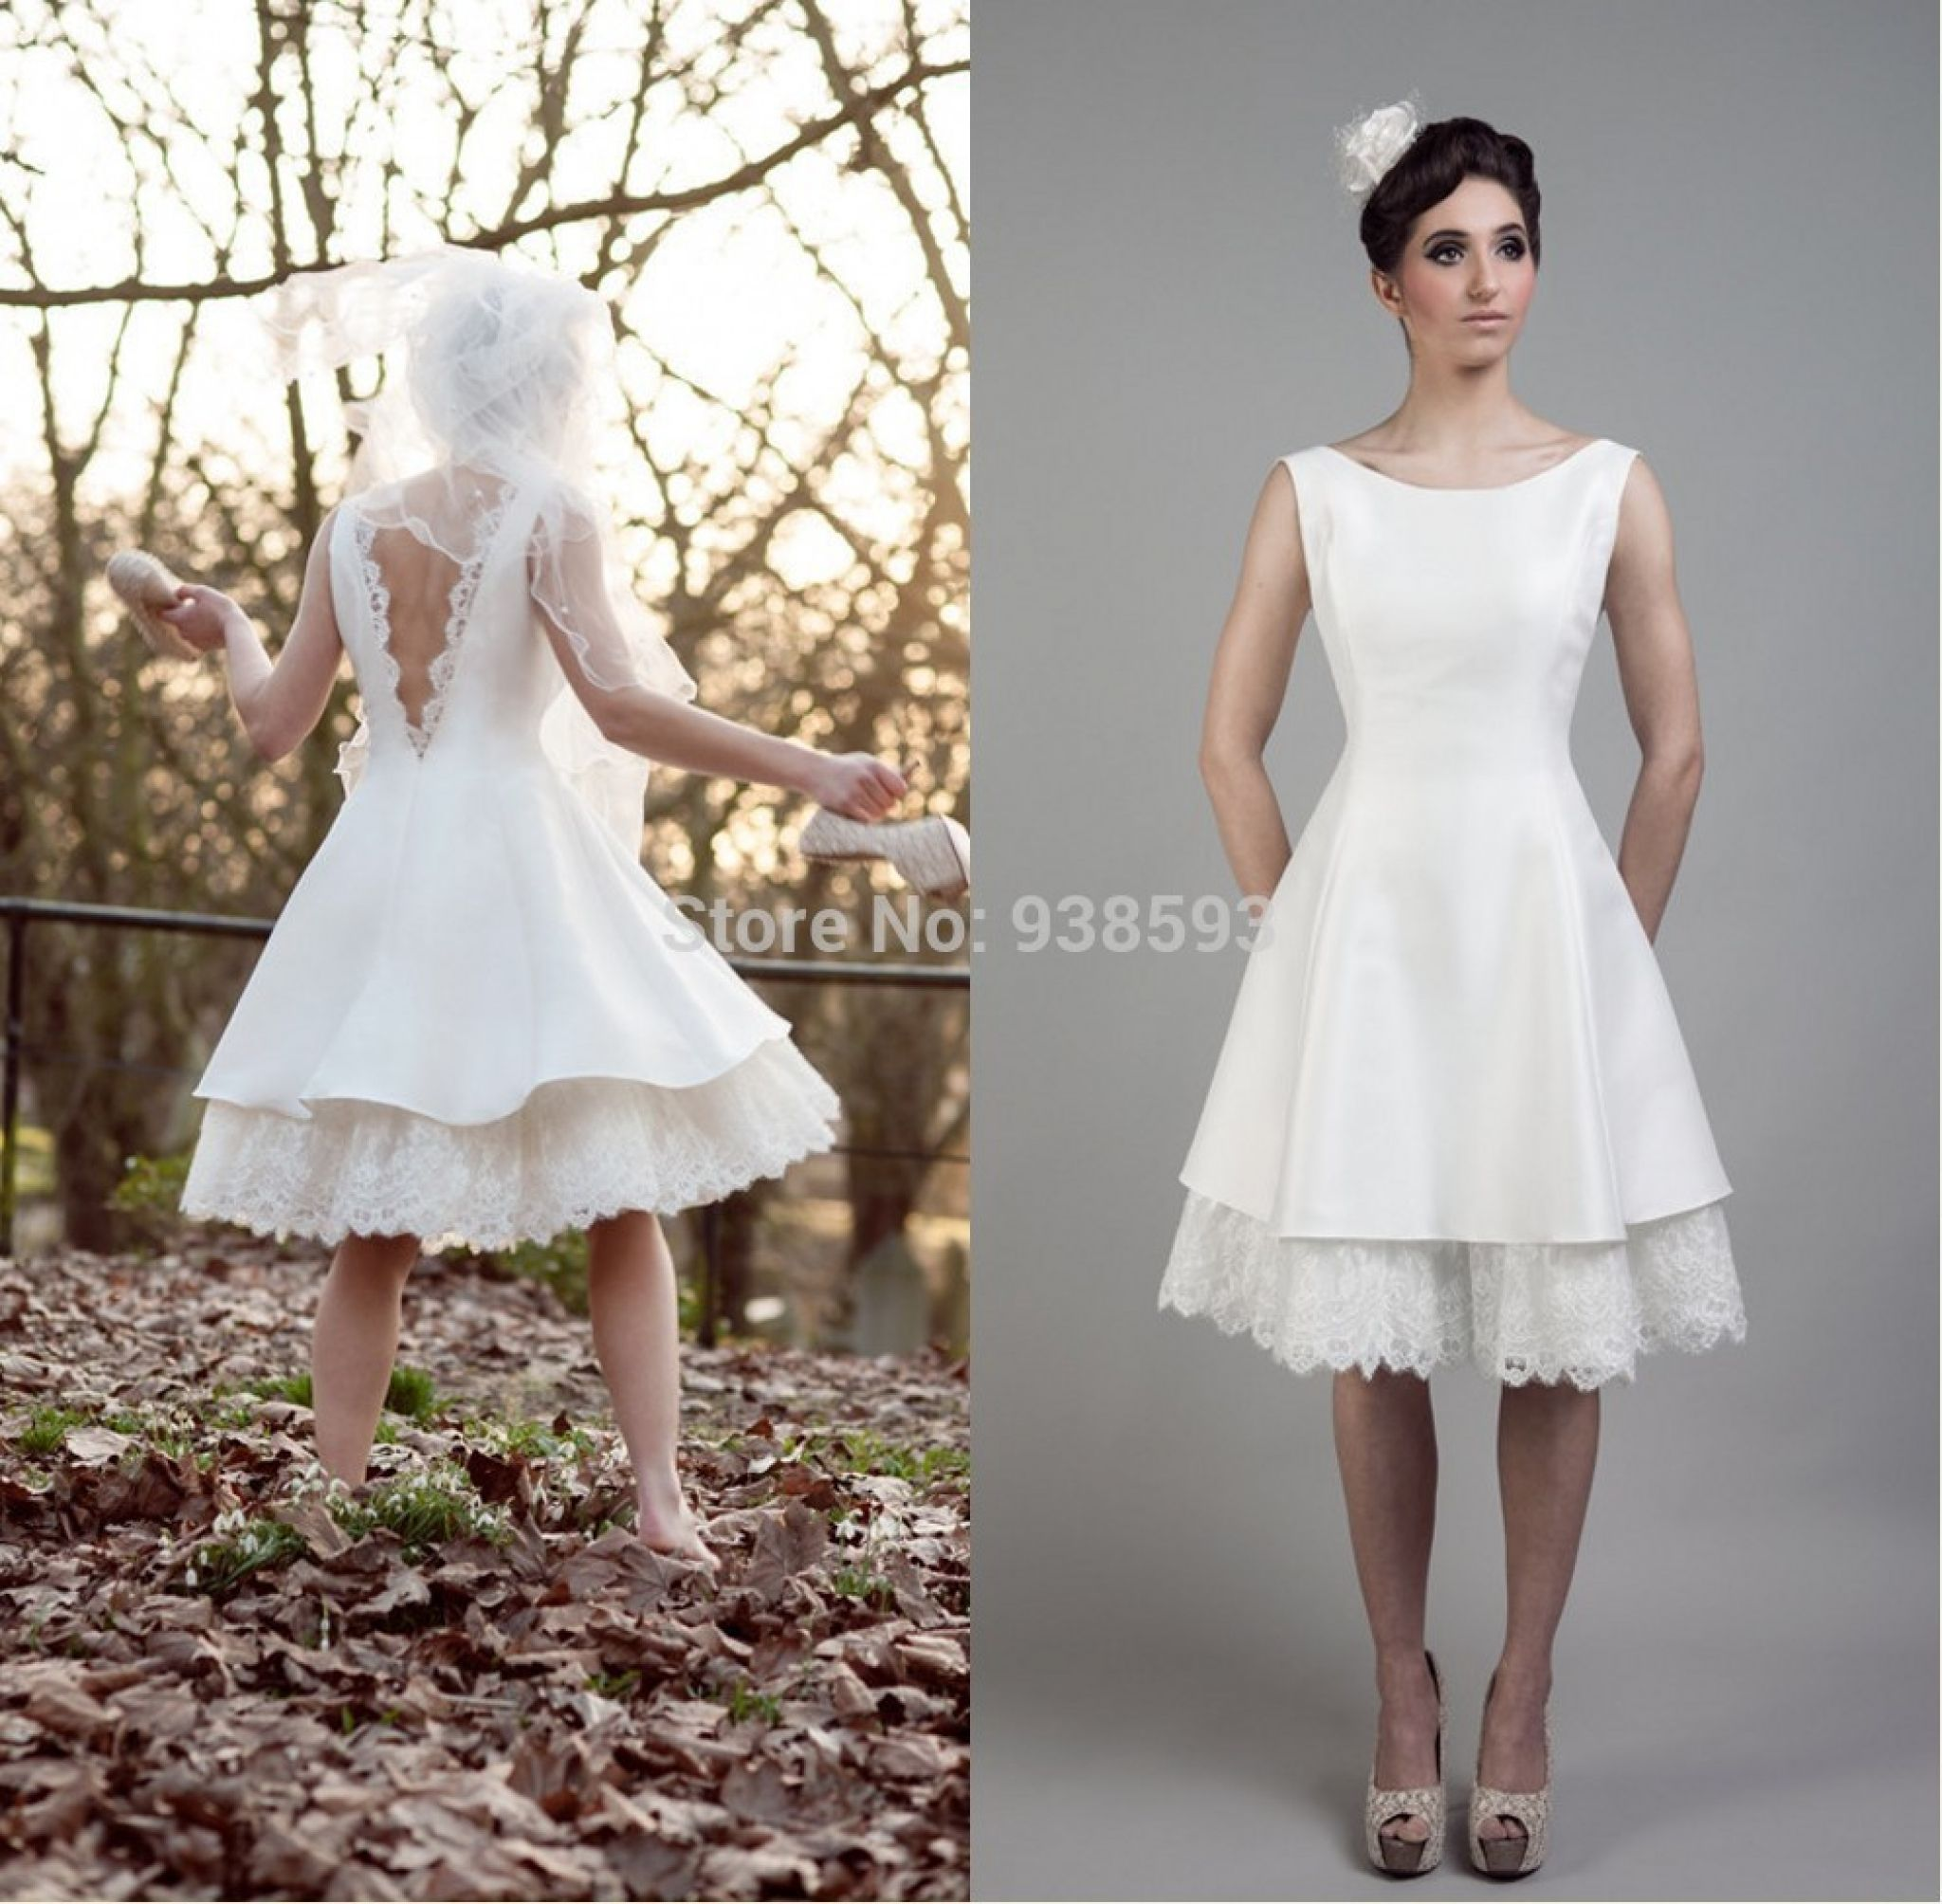 Simple short wedding dresses best shapewear for wedding dress